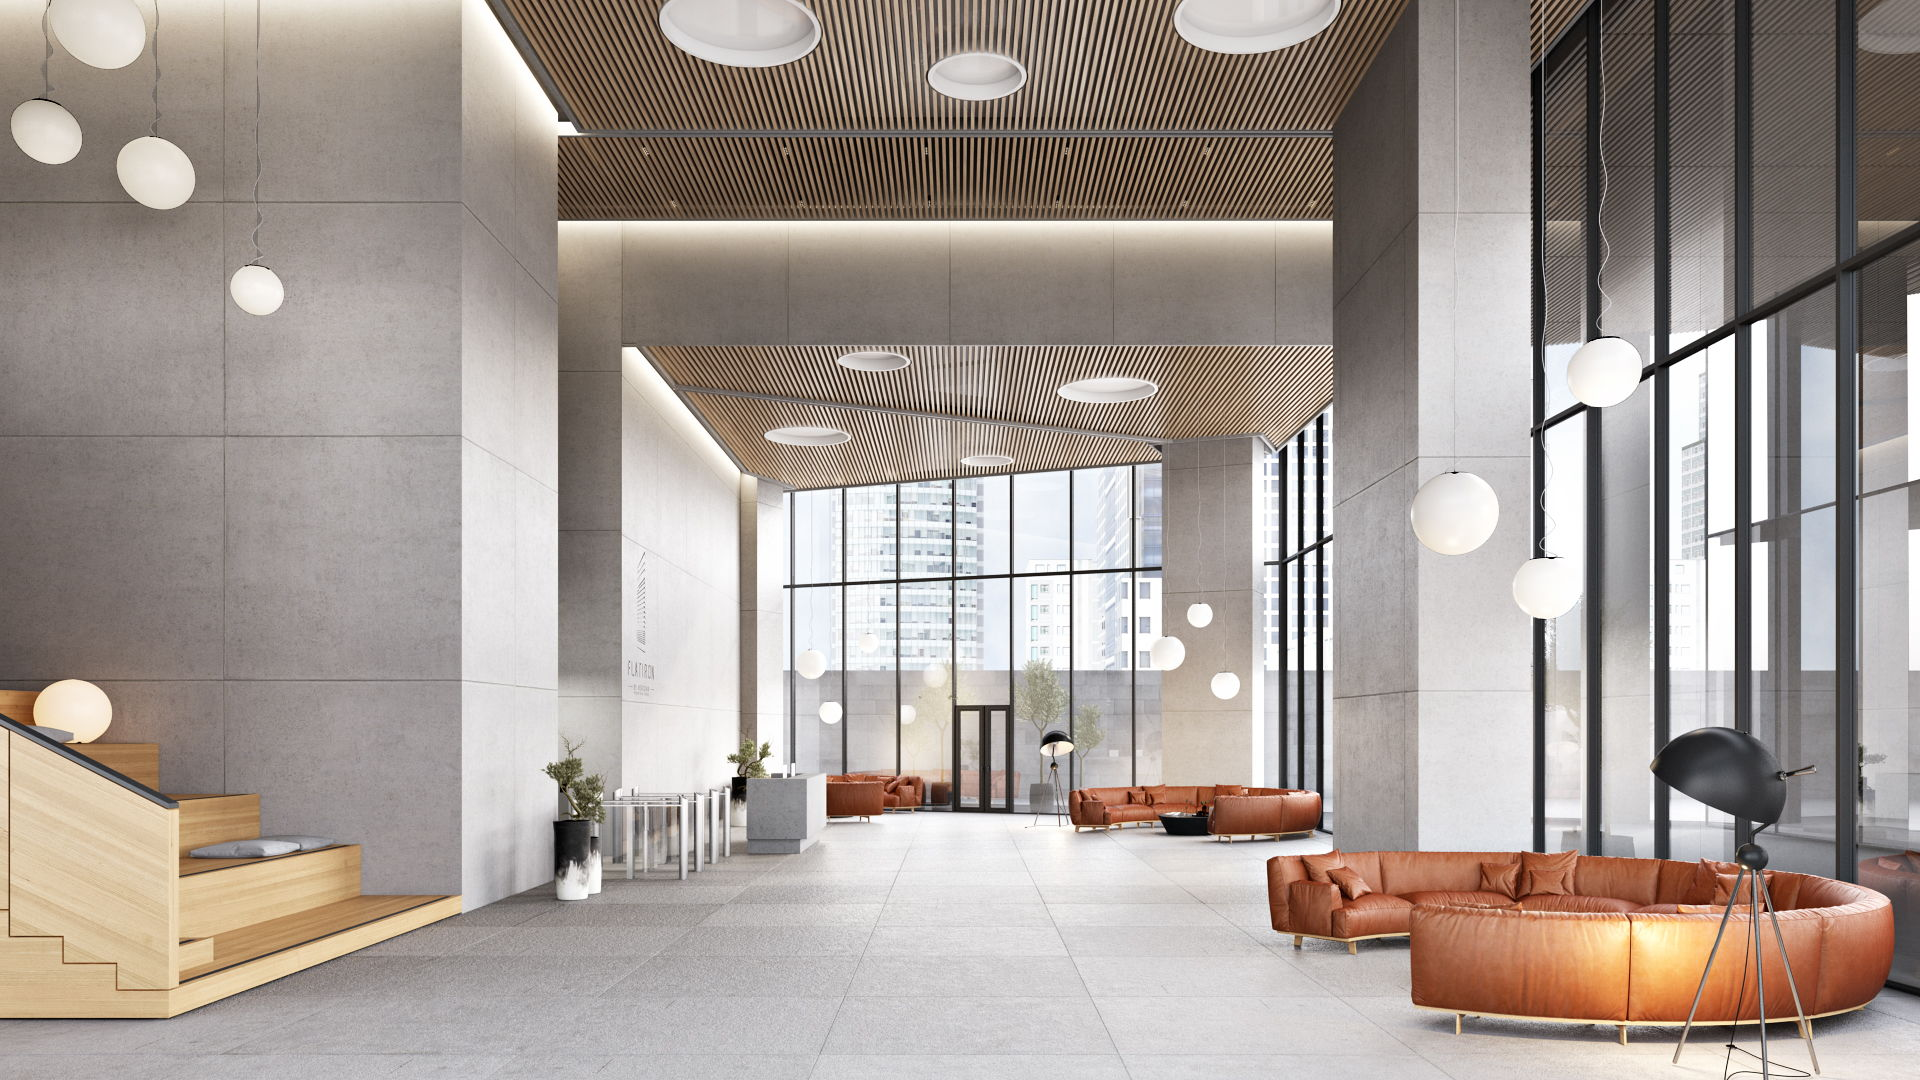 3D Rendering Of a Spacious Office Hall